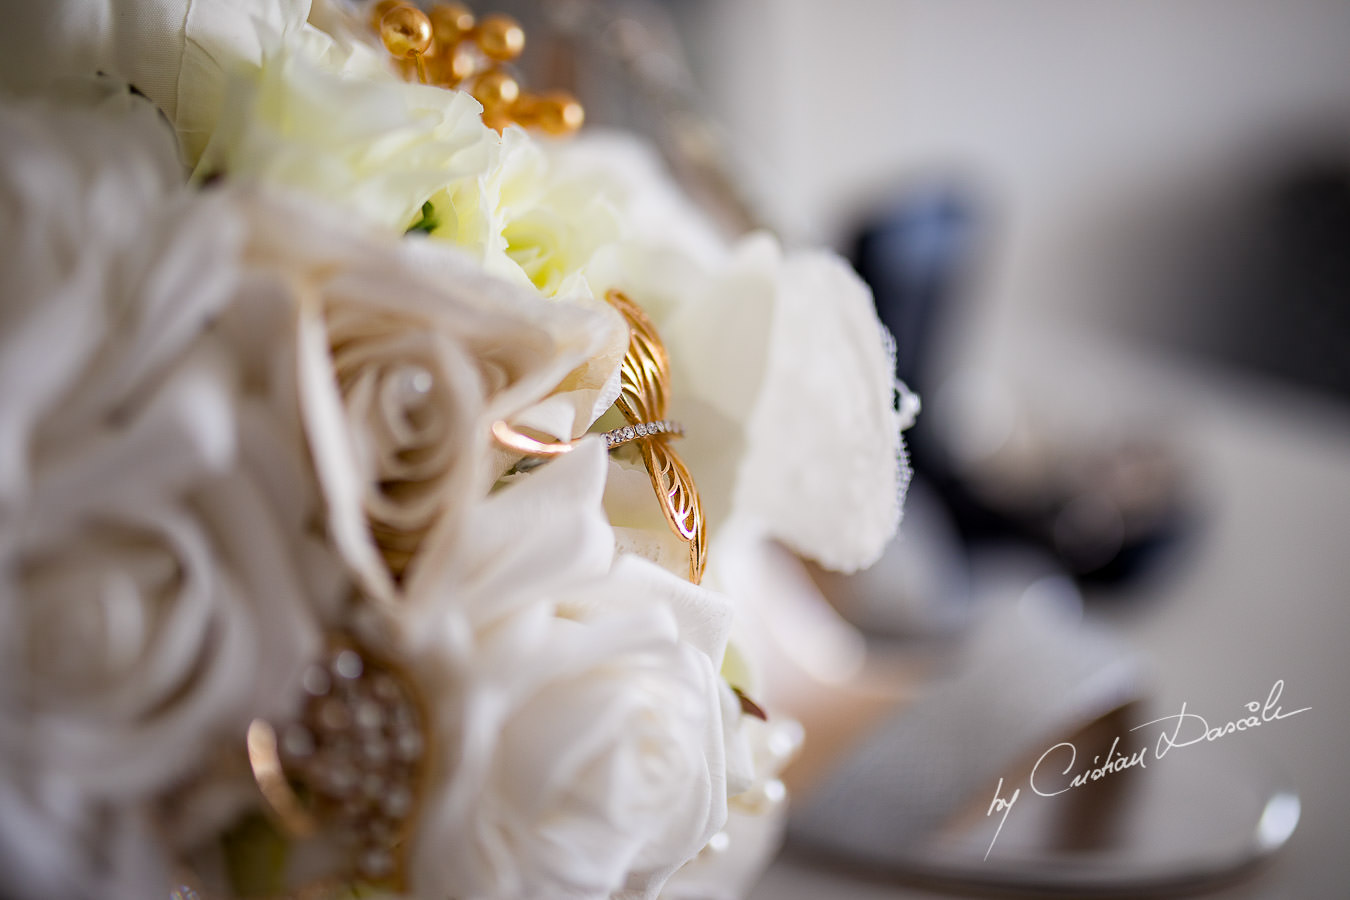 Bridal Bouquet captured during an Exquisite Wedding at Asterias Beach Hotel by Cyprus Photographer Cristian Dascalu.